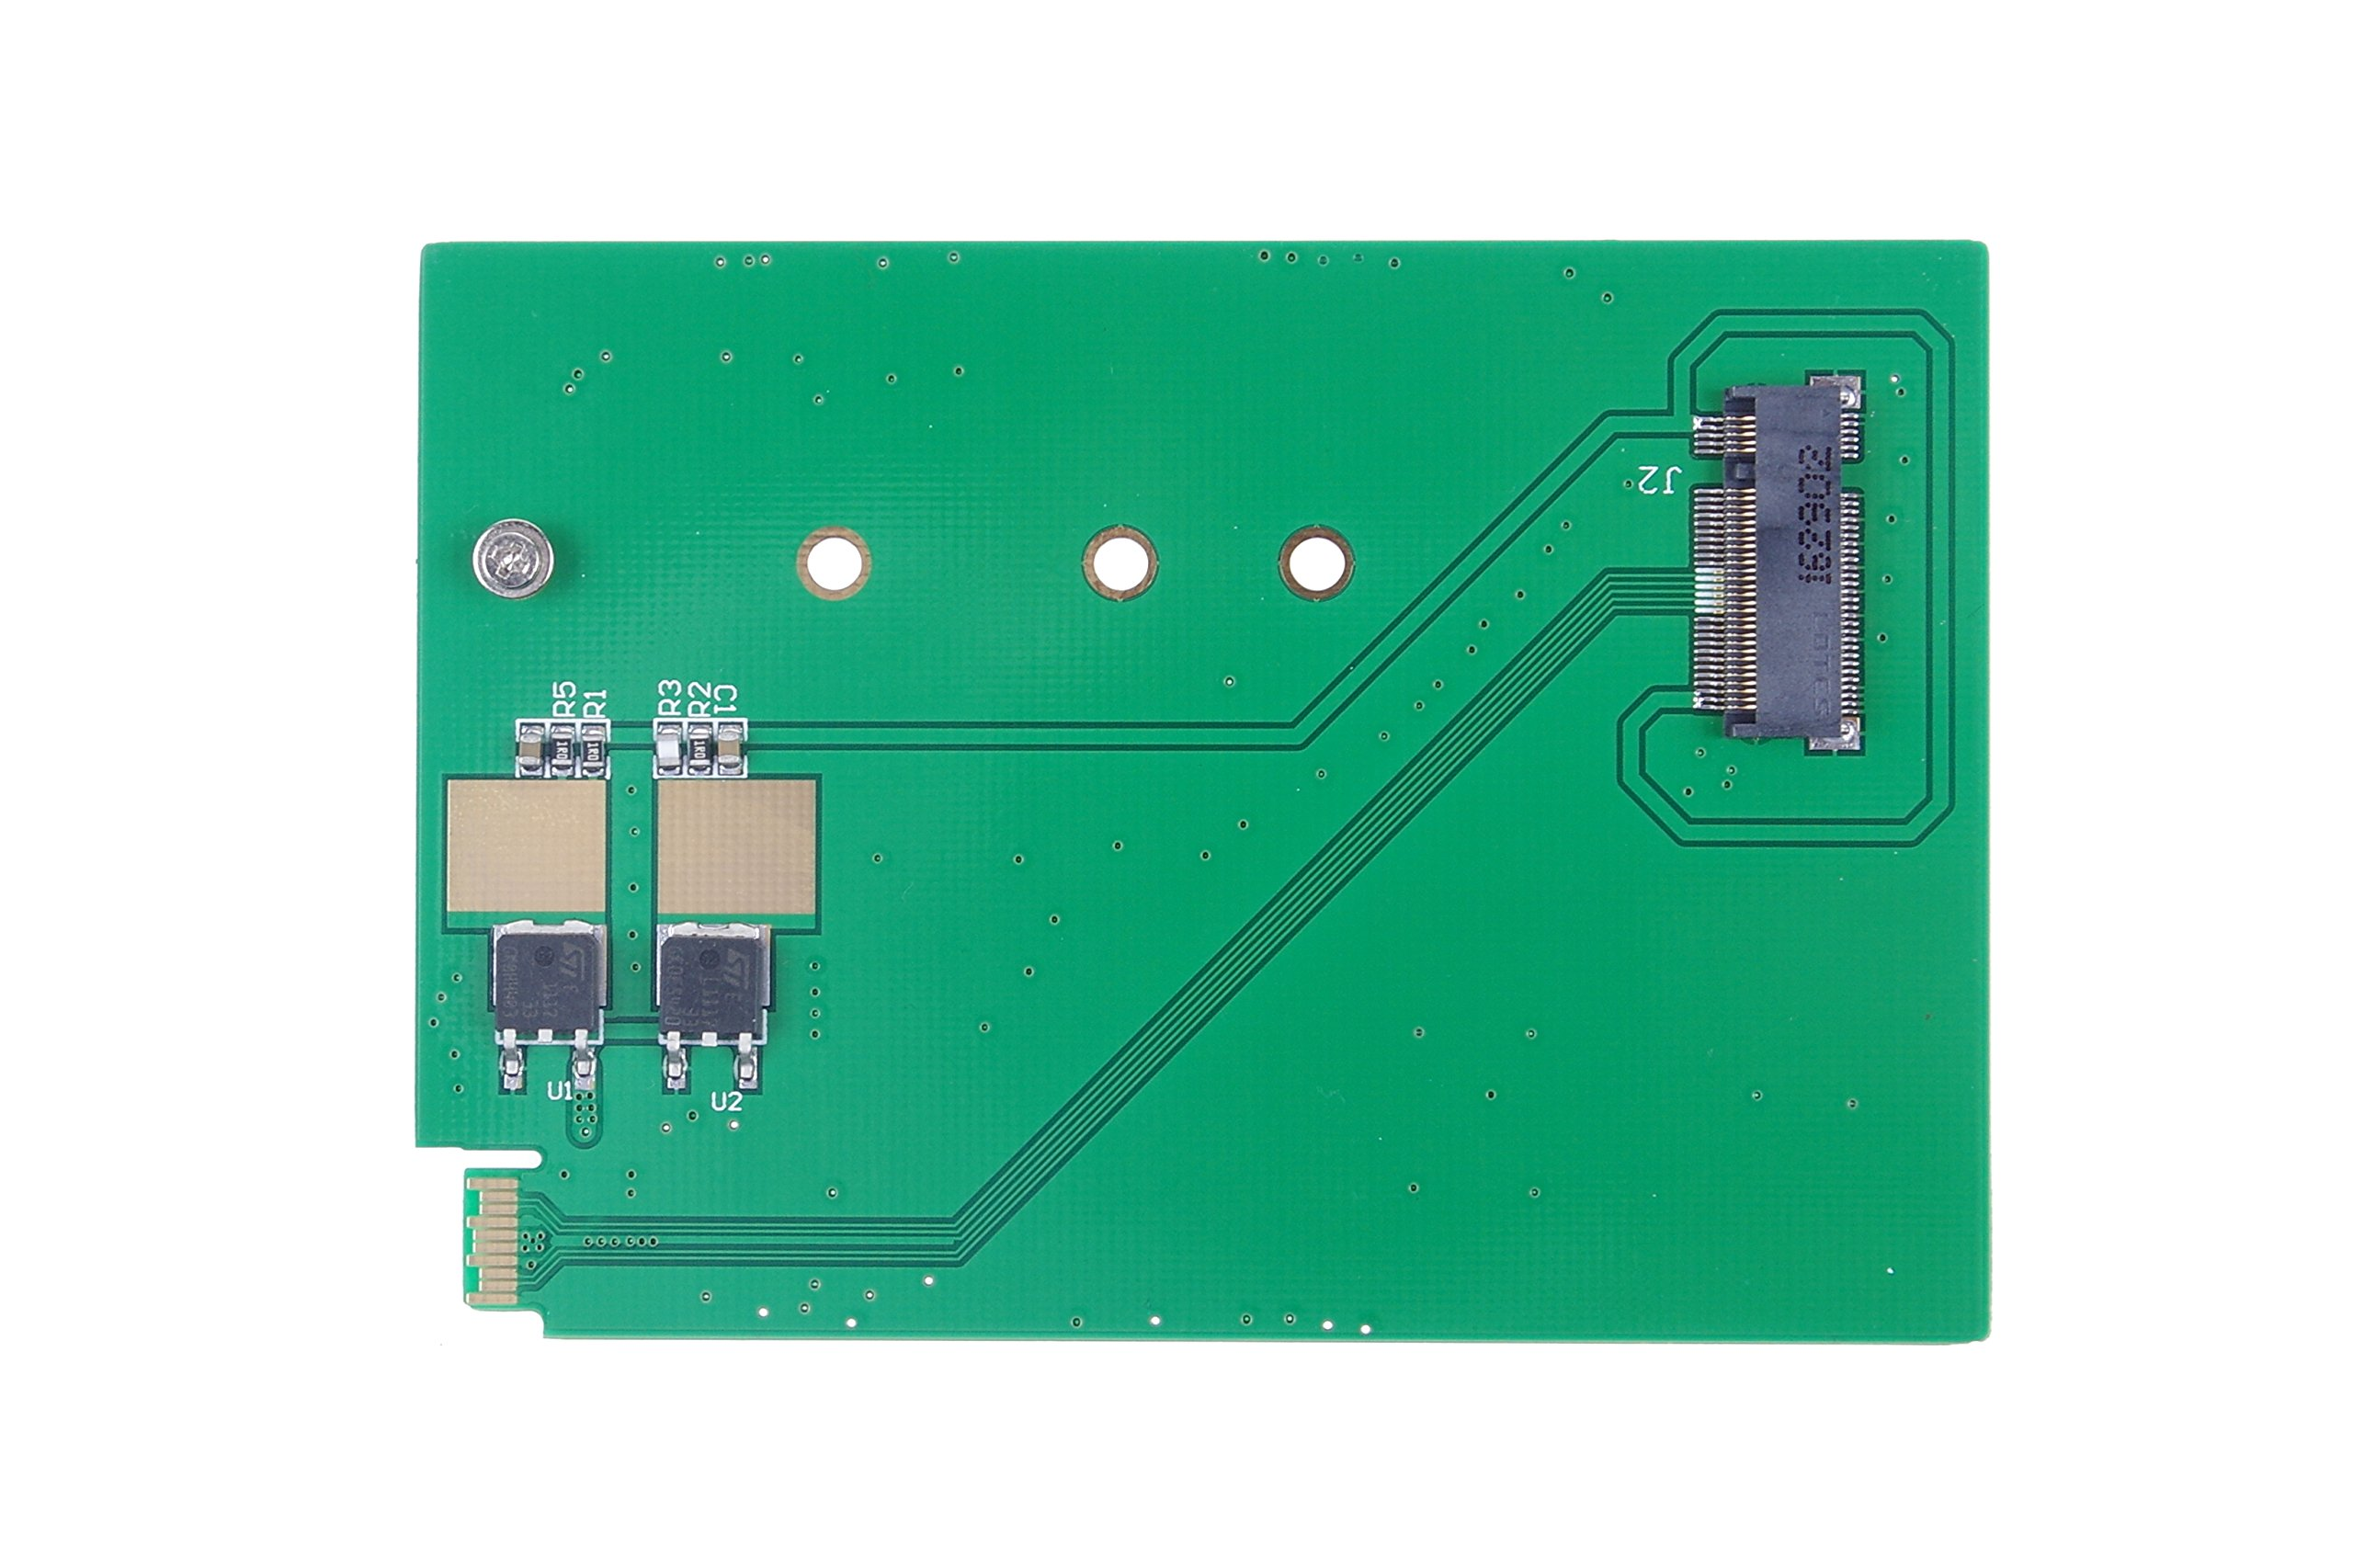 KNACRO M.2 NGFF SSD Adapter Card Replaces the WD5000MPCK WD5000M22K WD5000M21K Riser Card